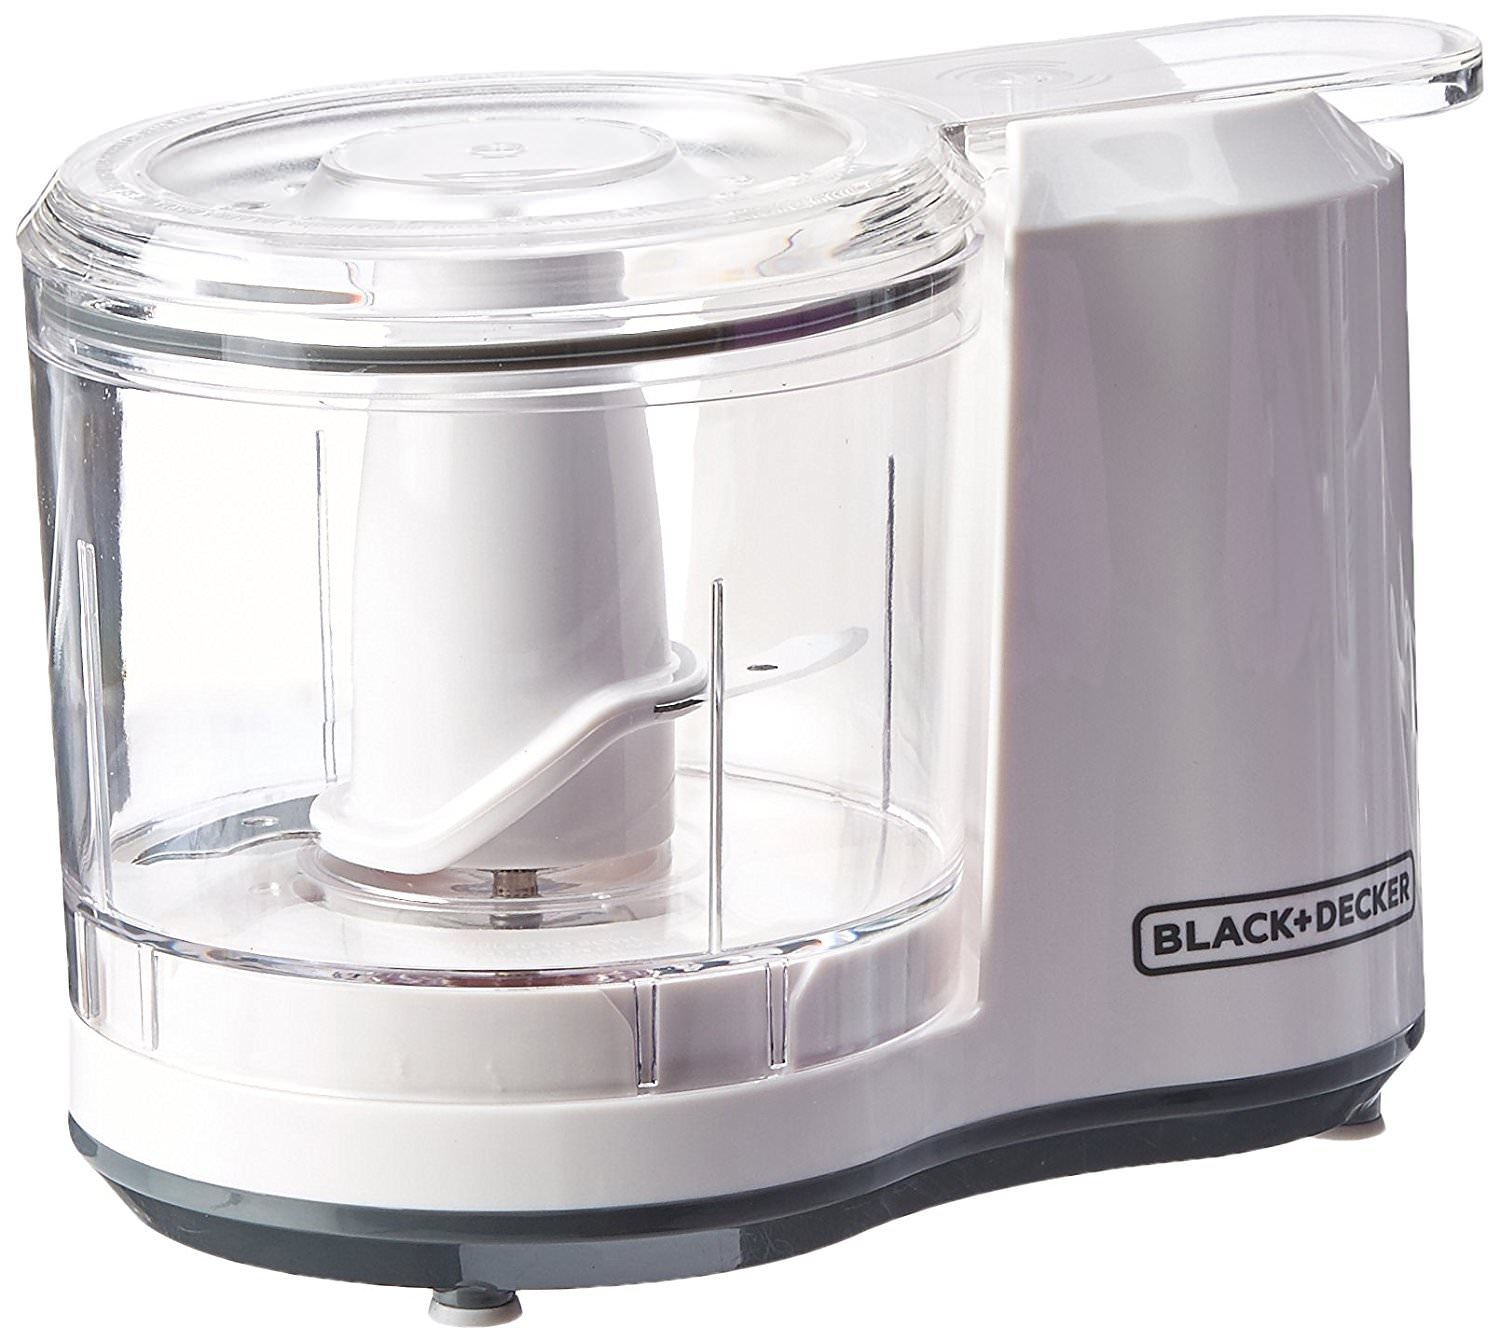 Black & Decker One-Touch Chopper 1.5 Cup Capacity Food Processor by Spectrum Brands